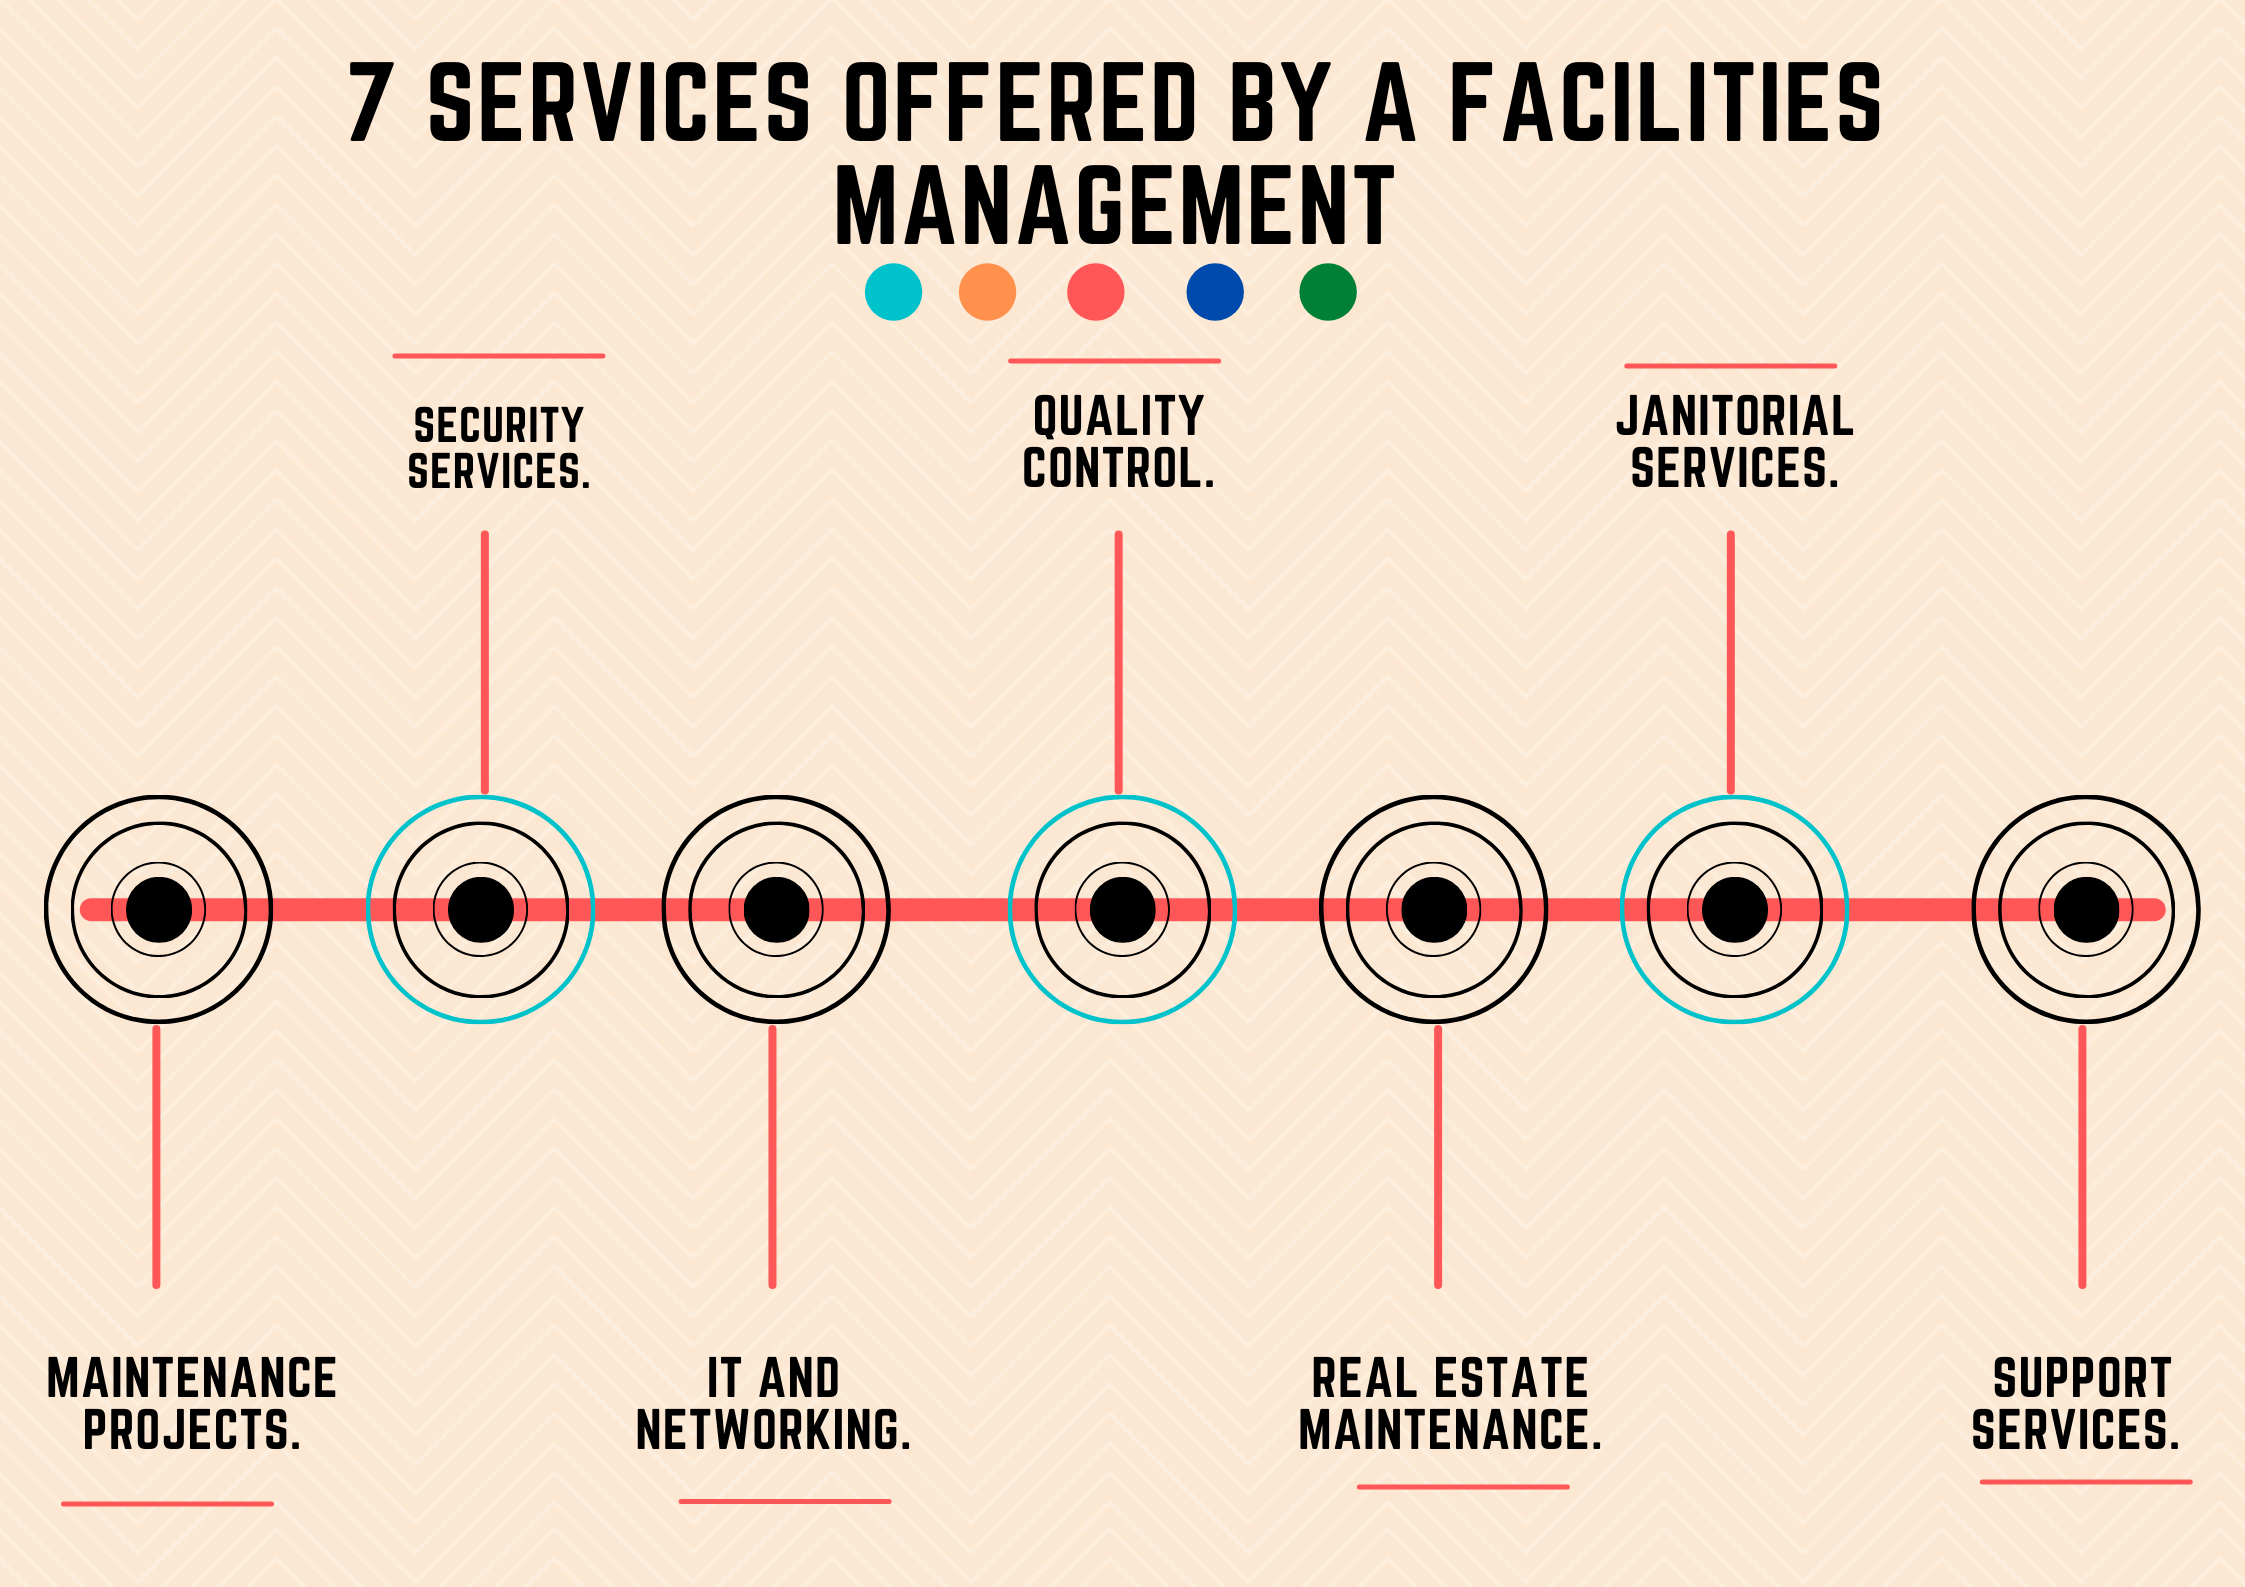 7-Services-Offered-by-a-Facilities-Management